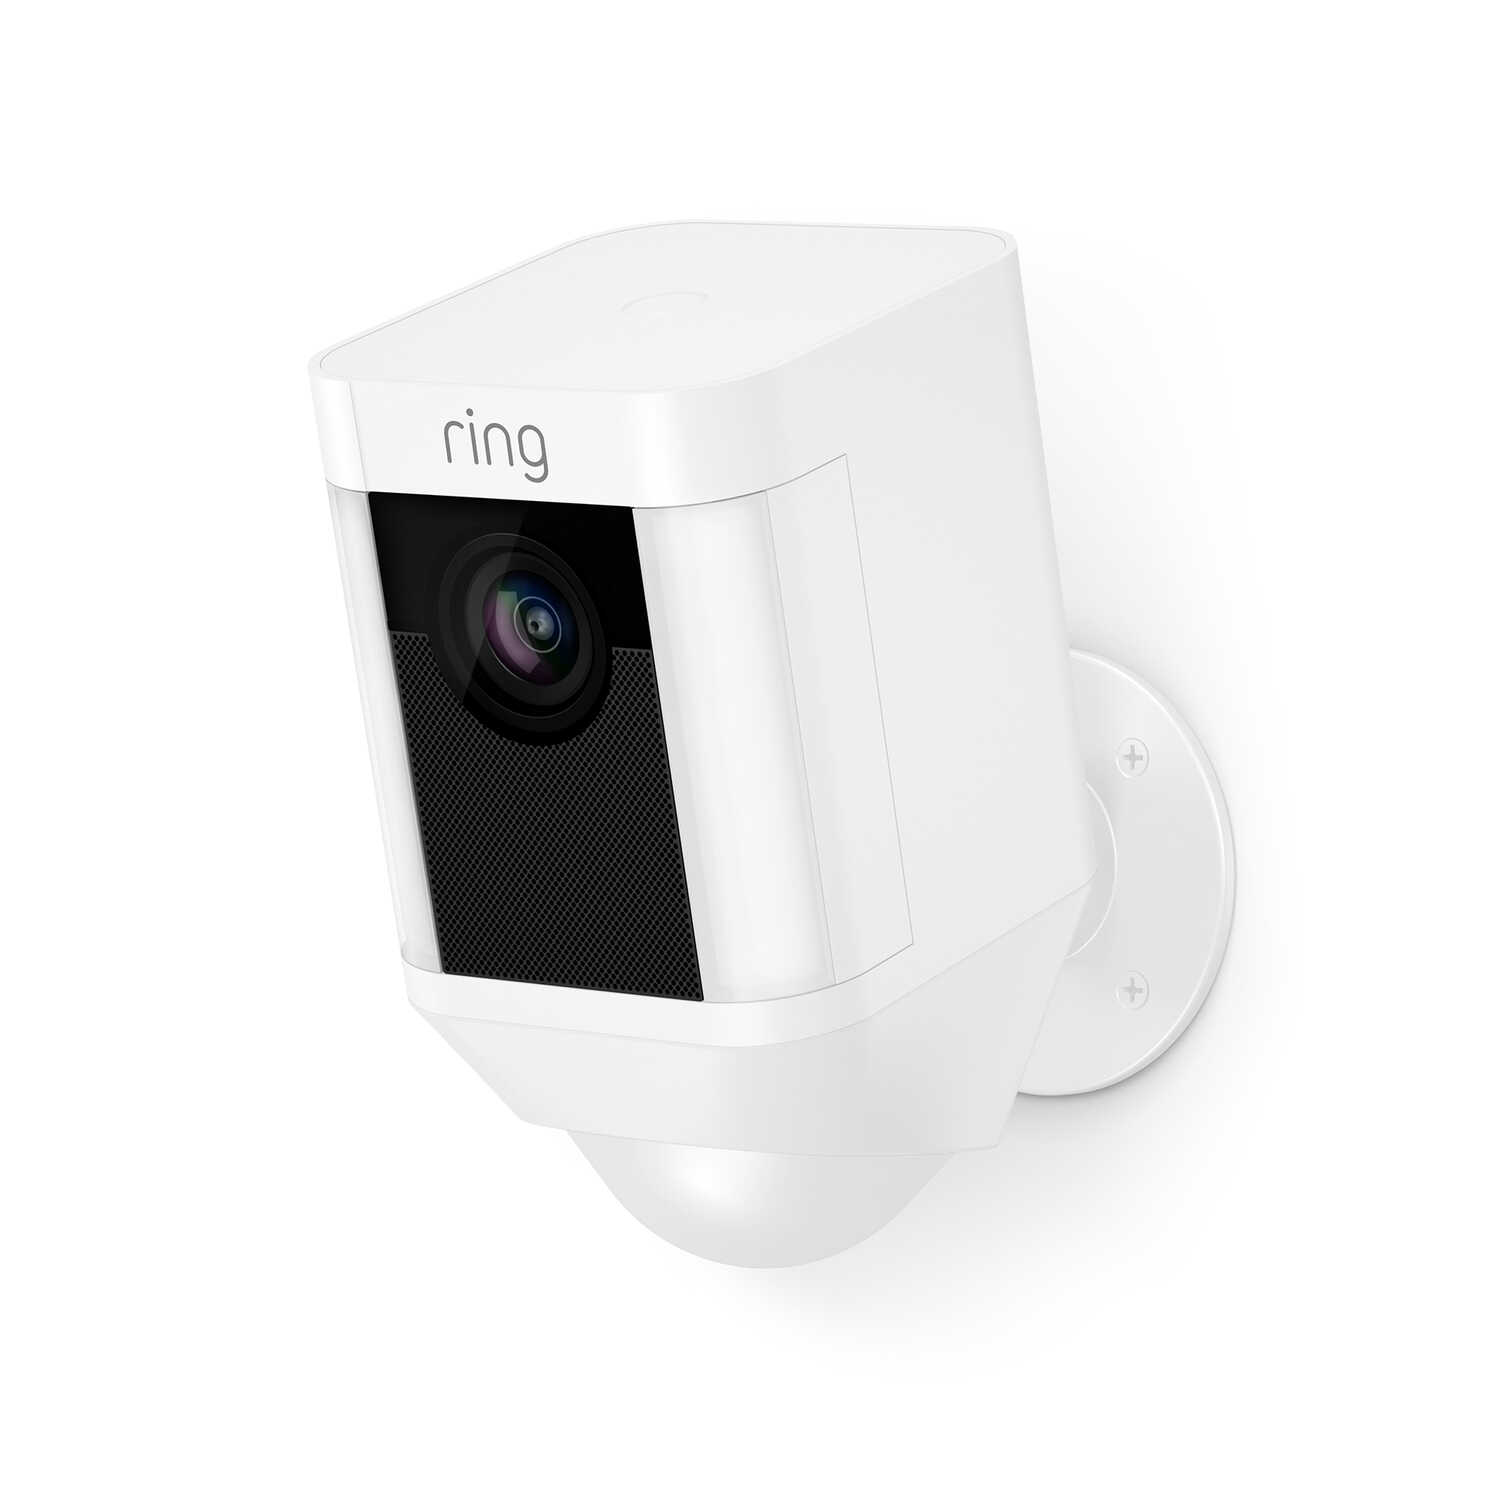 Ring  Battey Powered  Indoor and Outdoor  Wi-Fi Security Camera  White